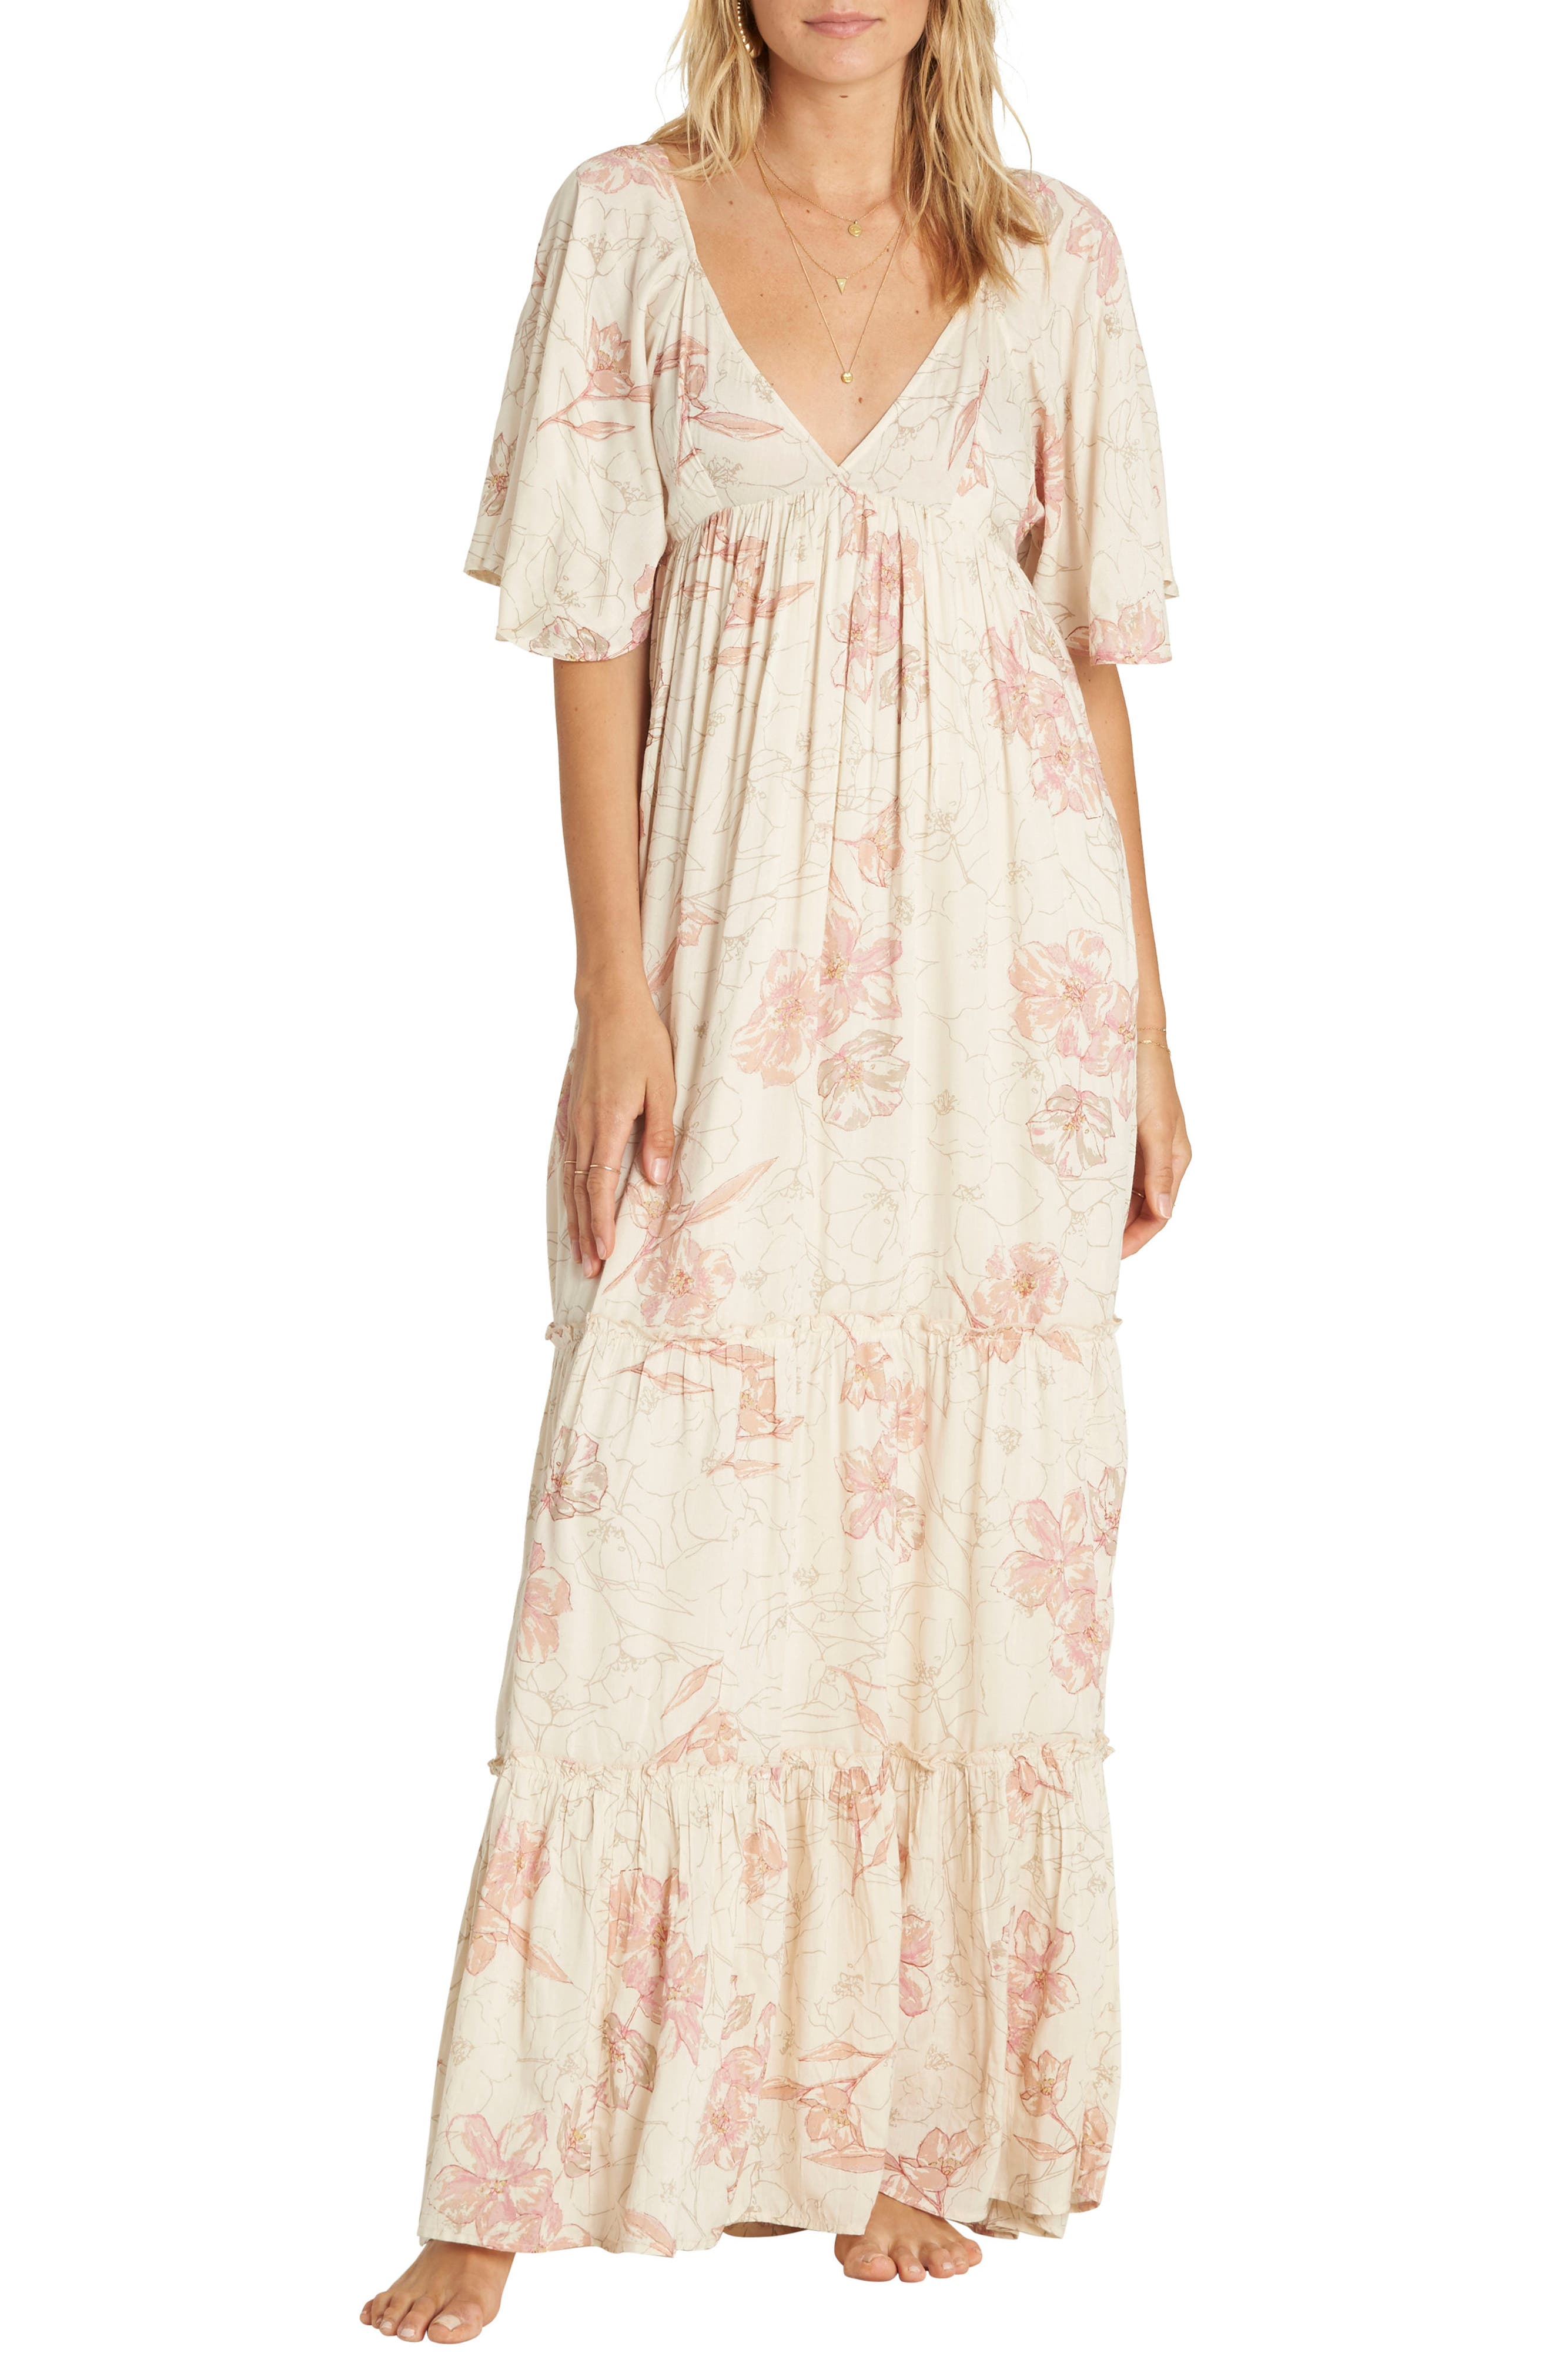 Seas the Day Maxi Dress,                         Main,                         color, Ivory